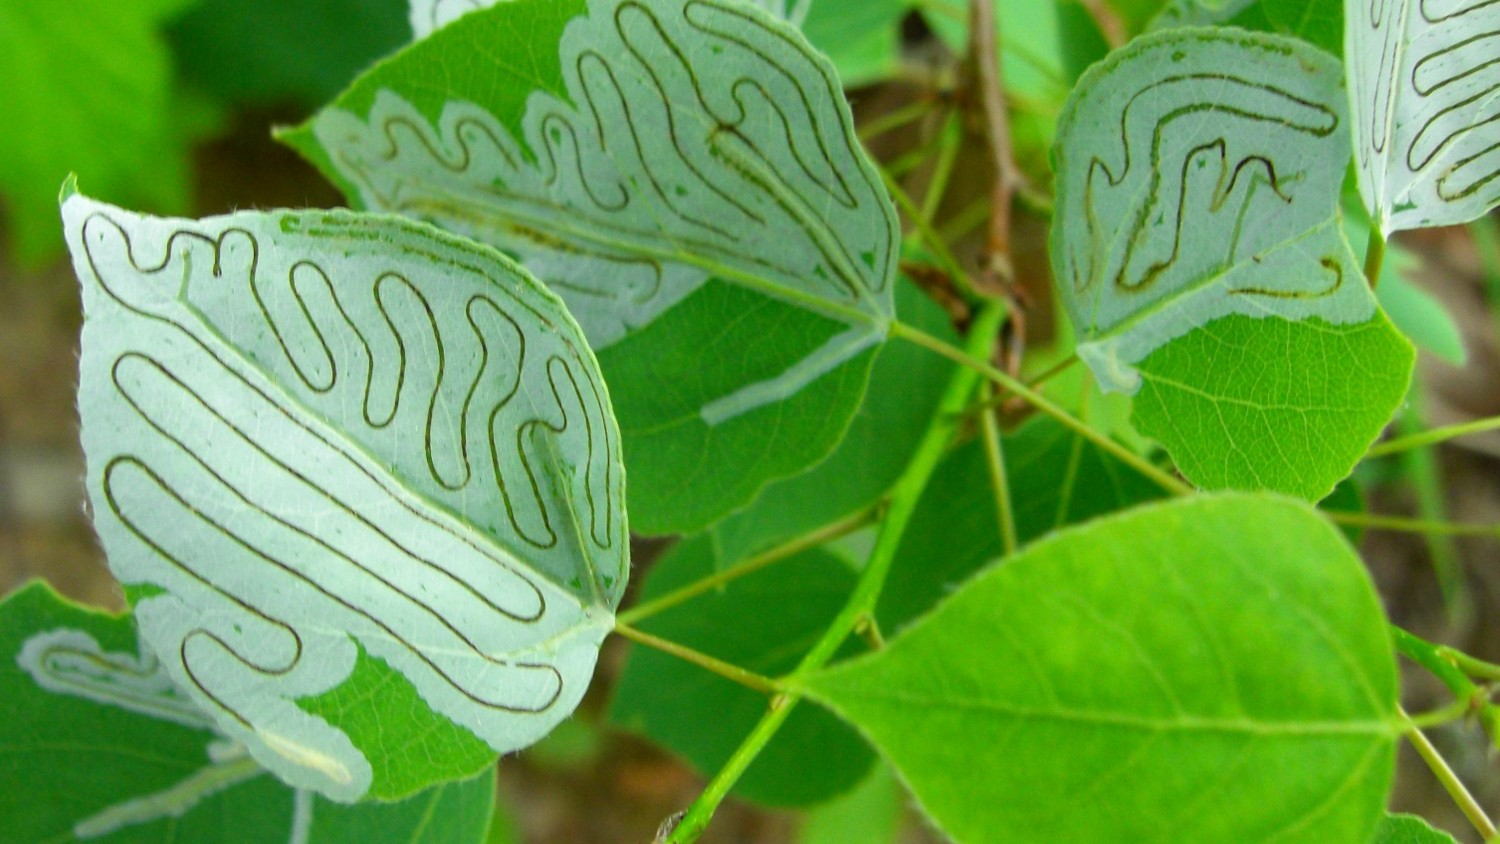 Image: leaf miner trails through aspen leaves